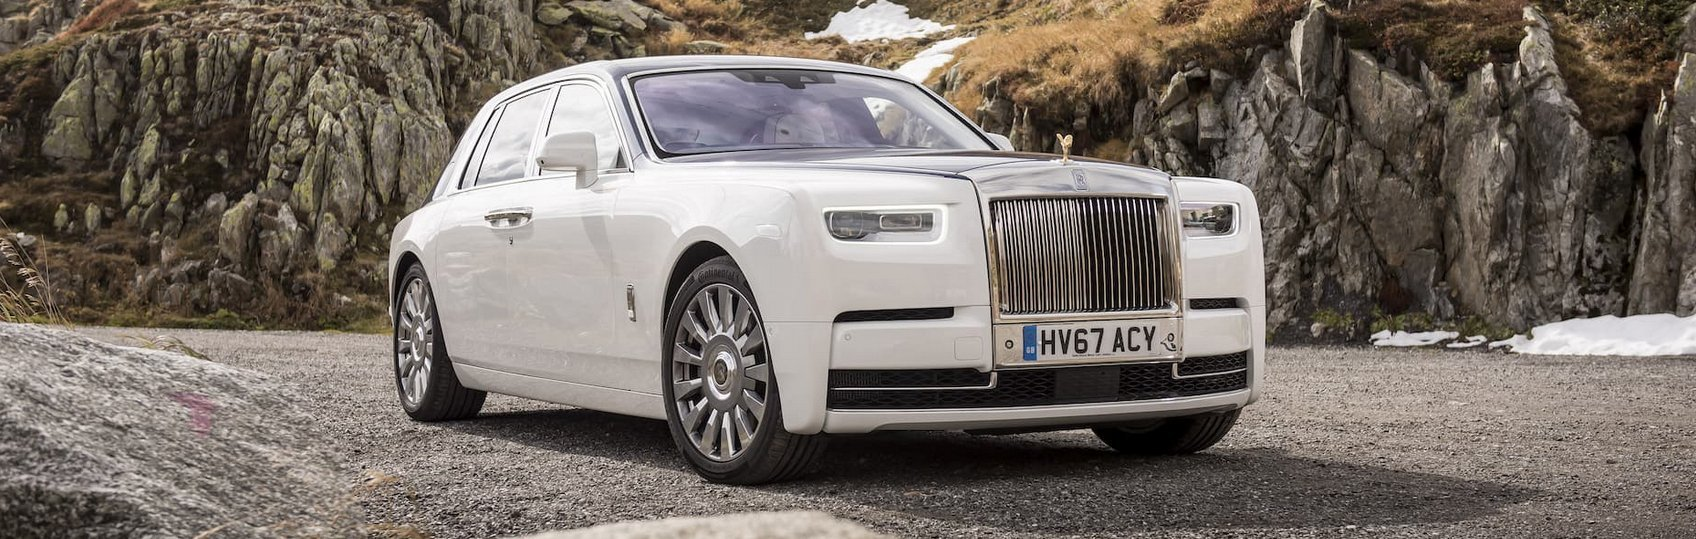 The Best Luxury Cars for 2020